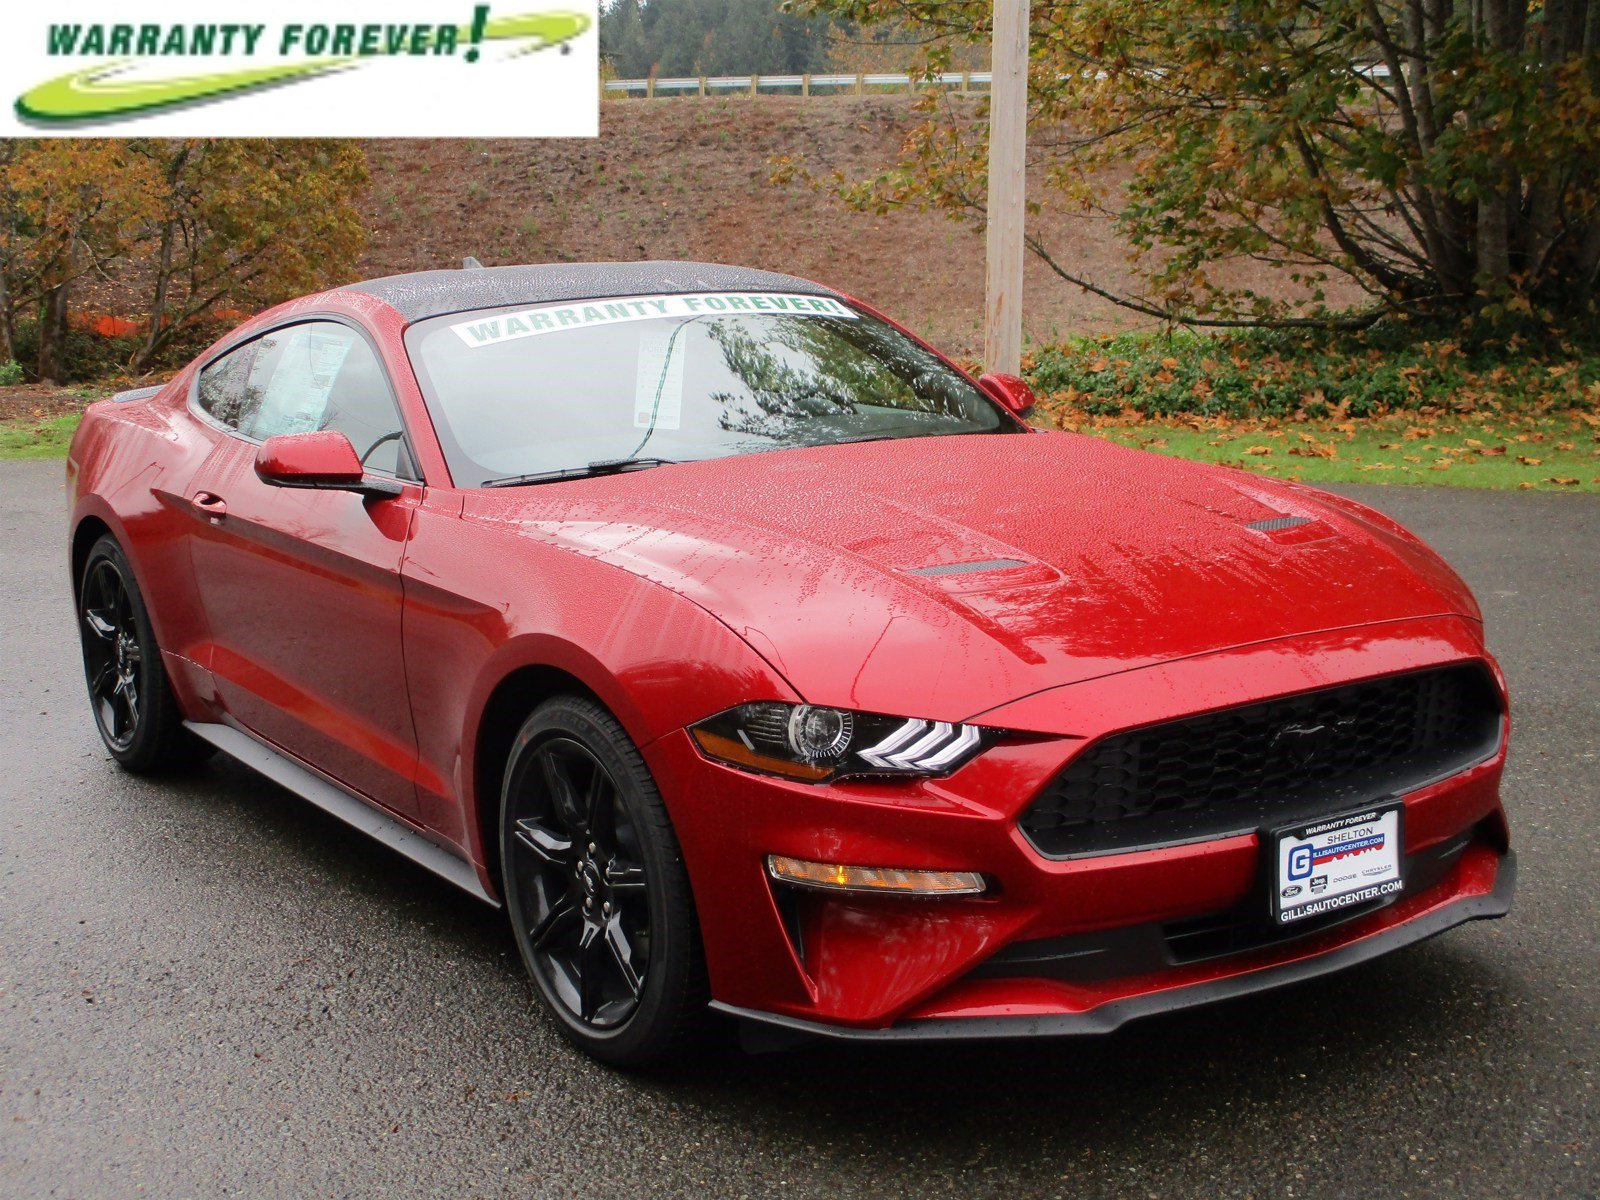 New-2020-Ford-Mustang-EcoBoost-Fastback